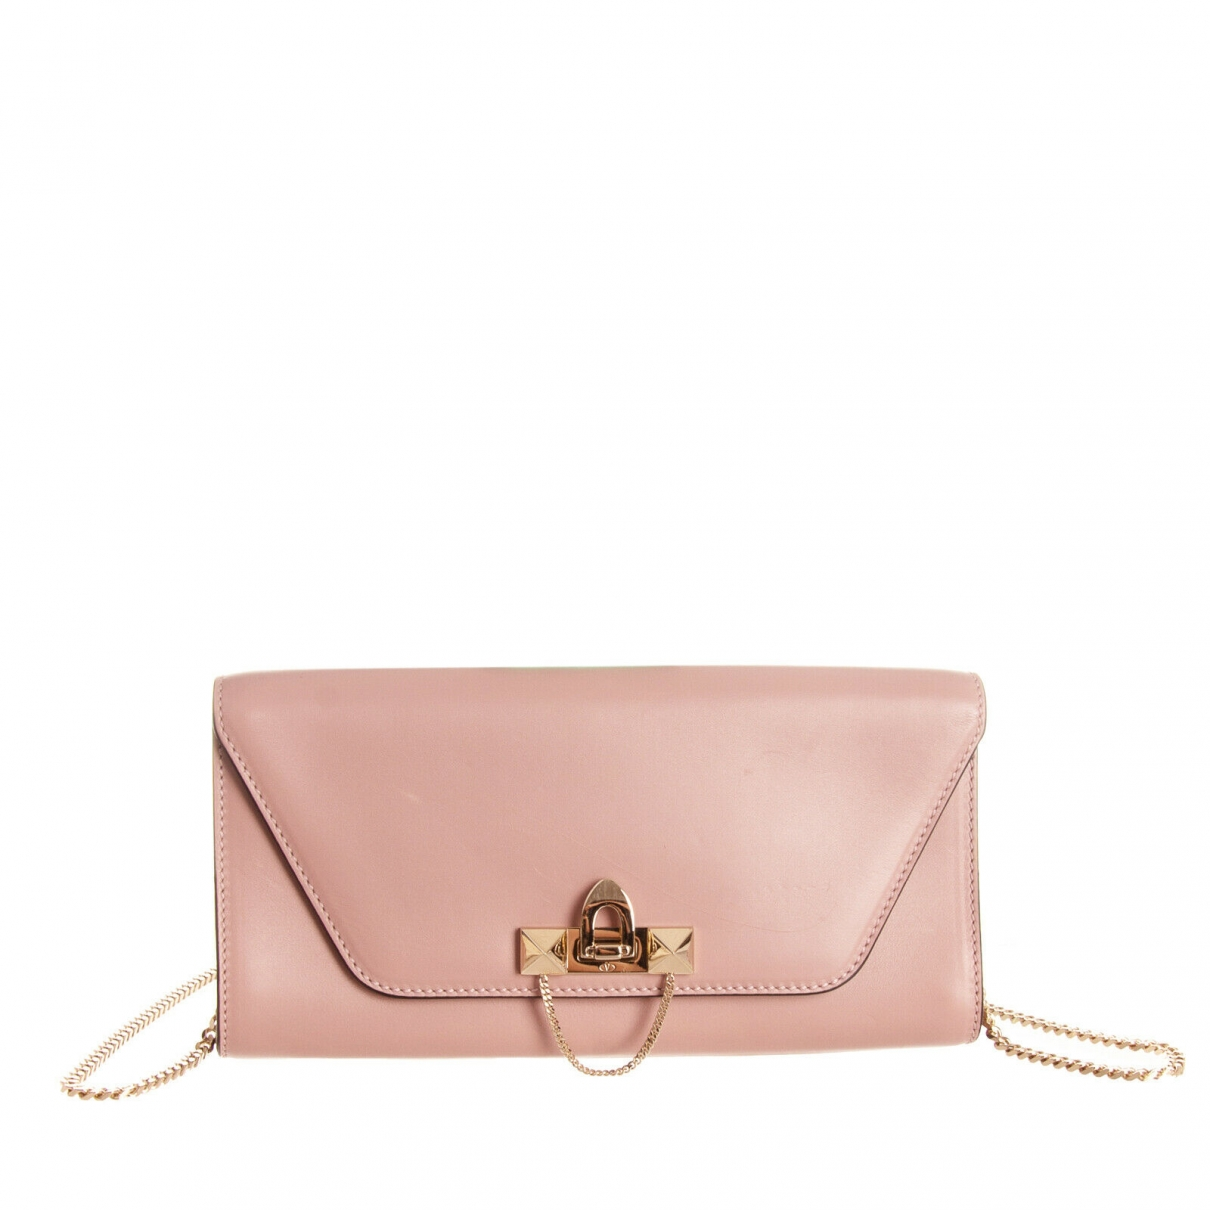 Valentino Garavani Demilune Pink Leather handbag for Women \N